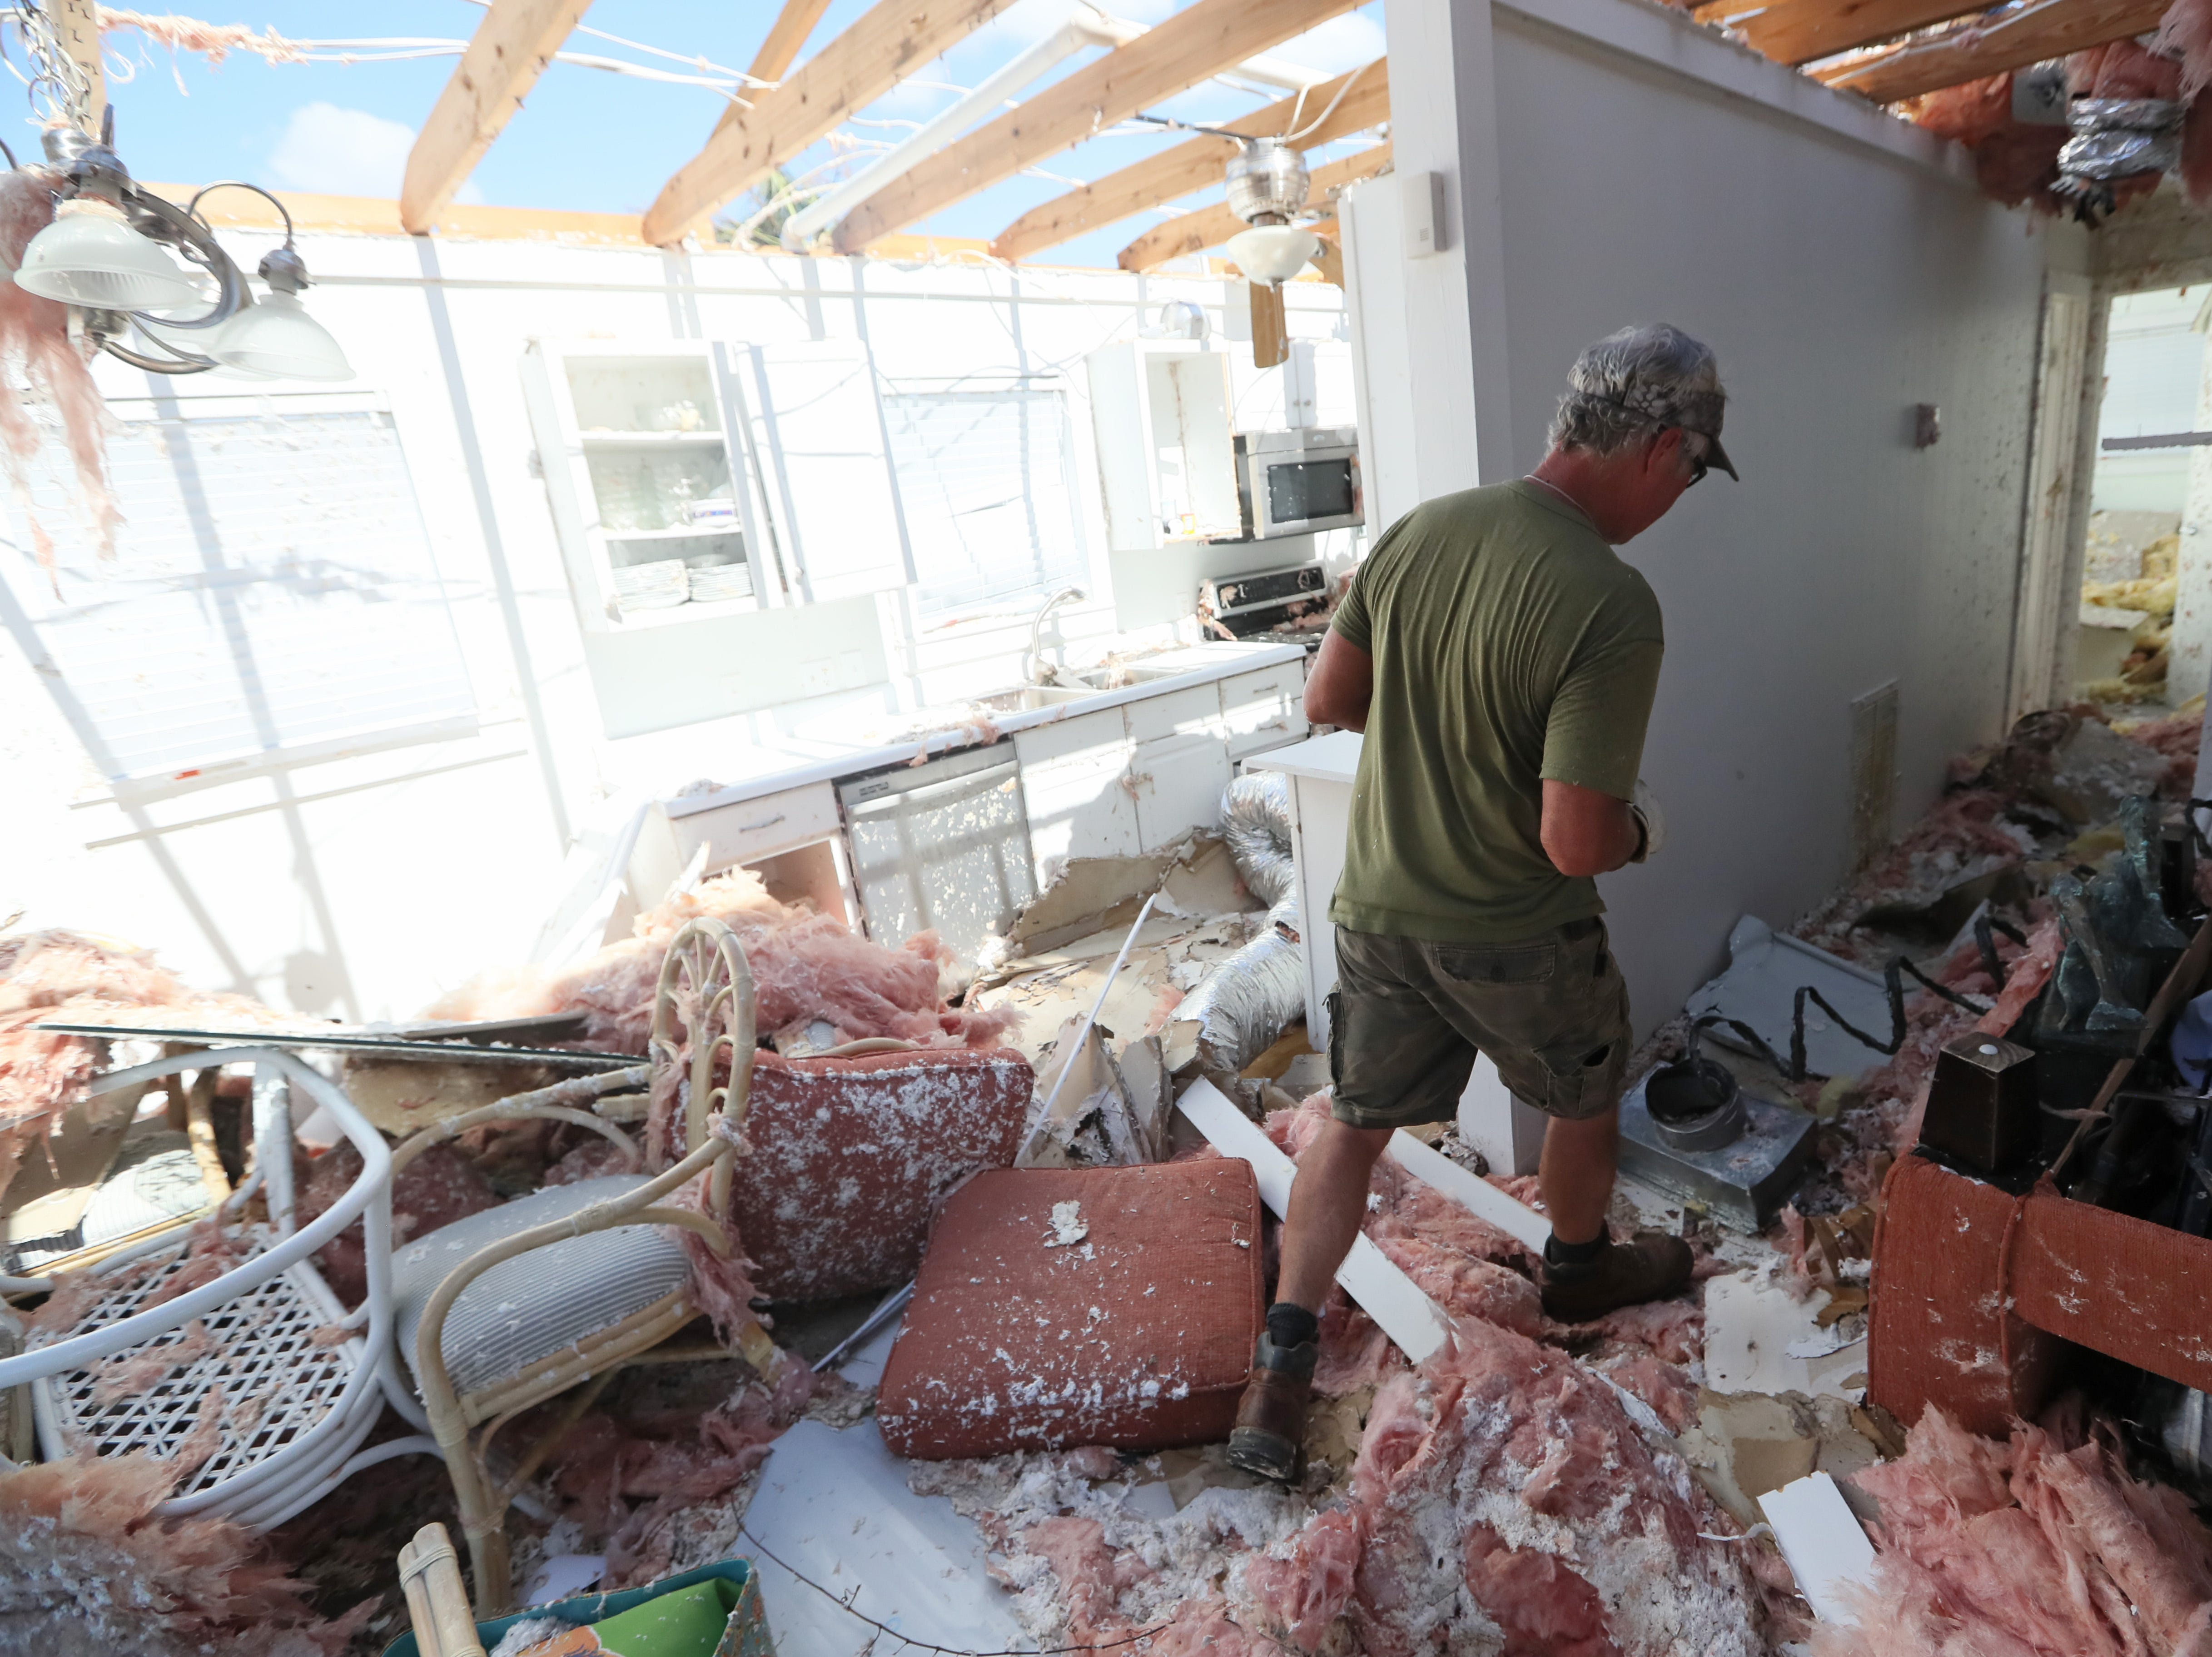 Mark Redd of Marietta, Ga. looks through his parent's vacation home in Mexico Beach on Wednesday, Oct. 17, 2018, one week after Hurricane Michael ripped through the coastal Florida town.